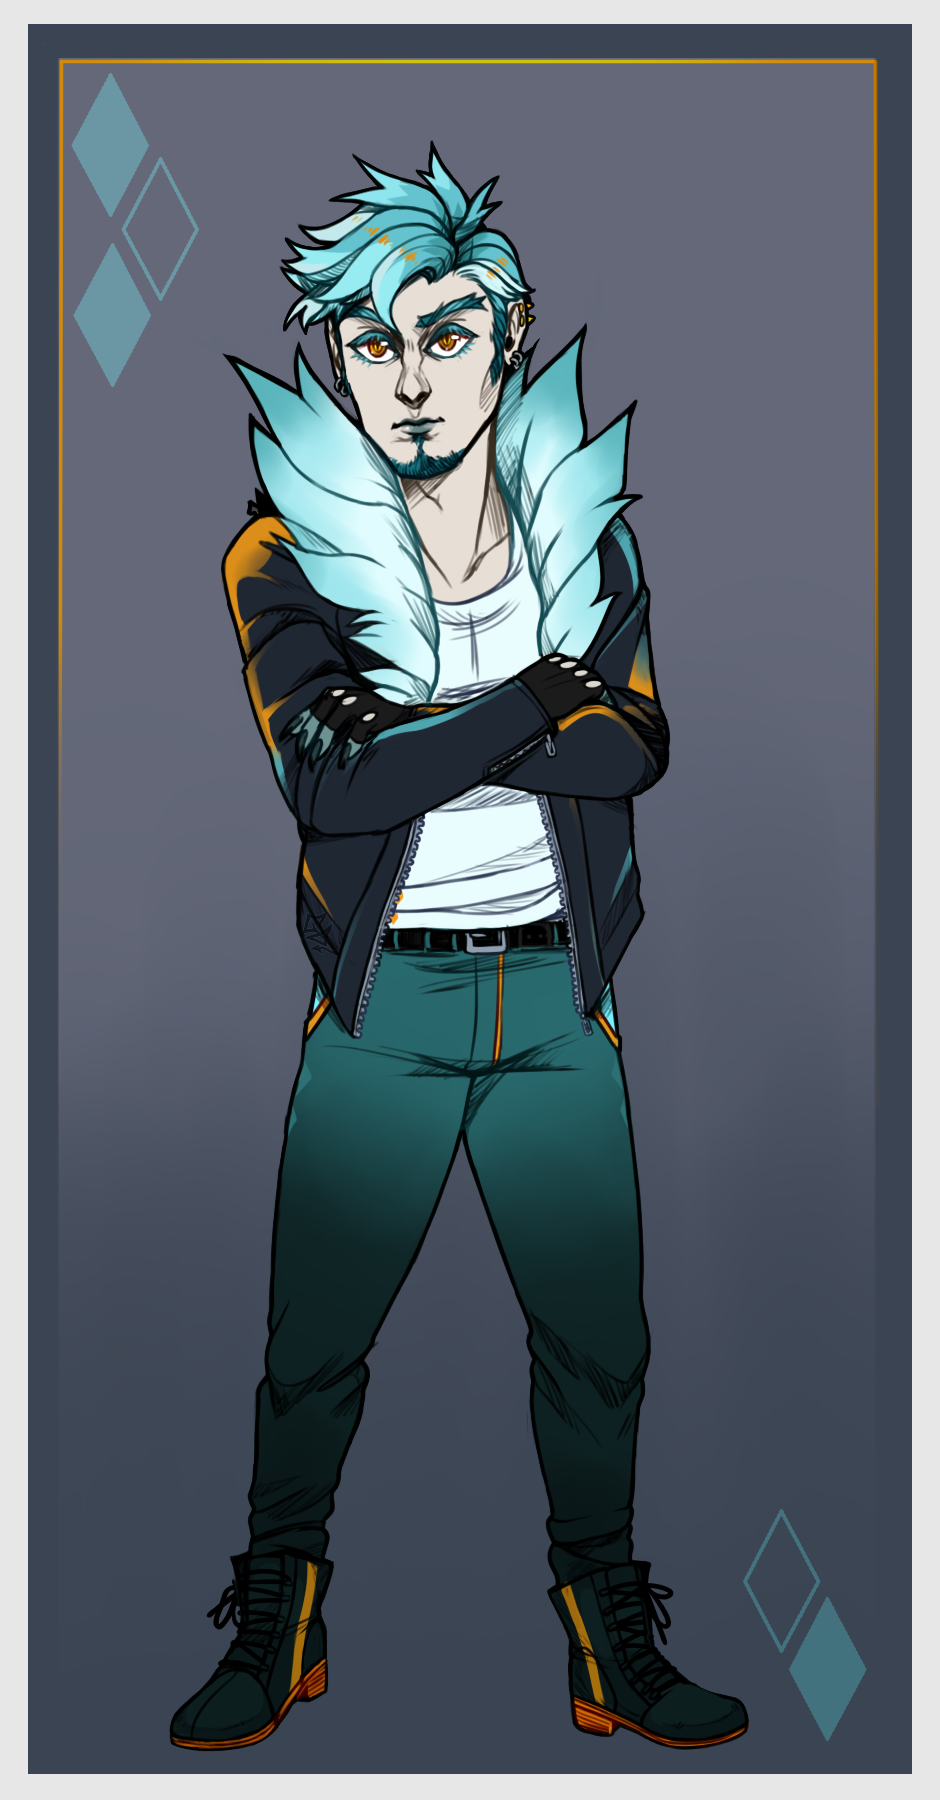 Icy Boi - Humanized Cinnadog [COM]